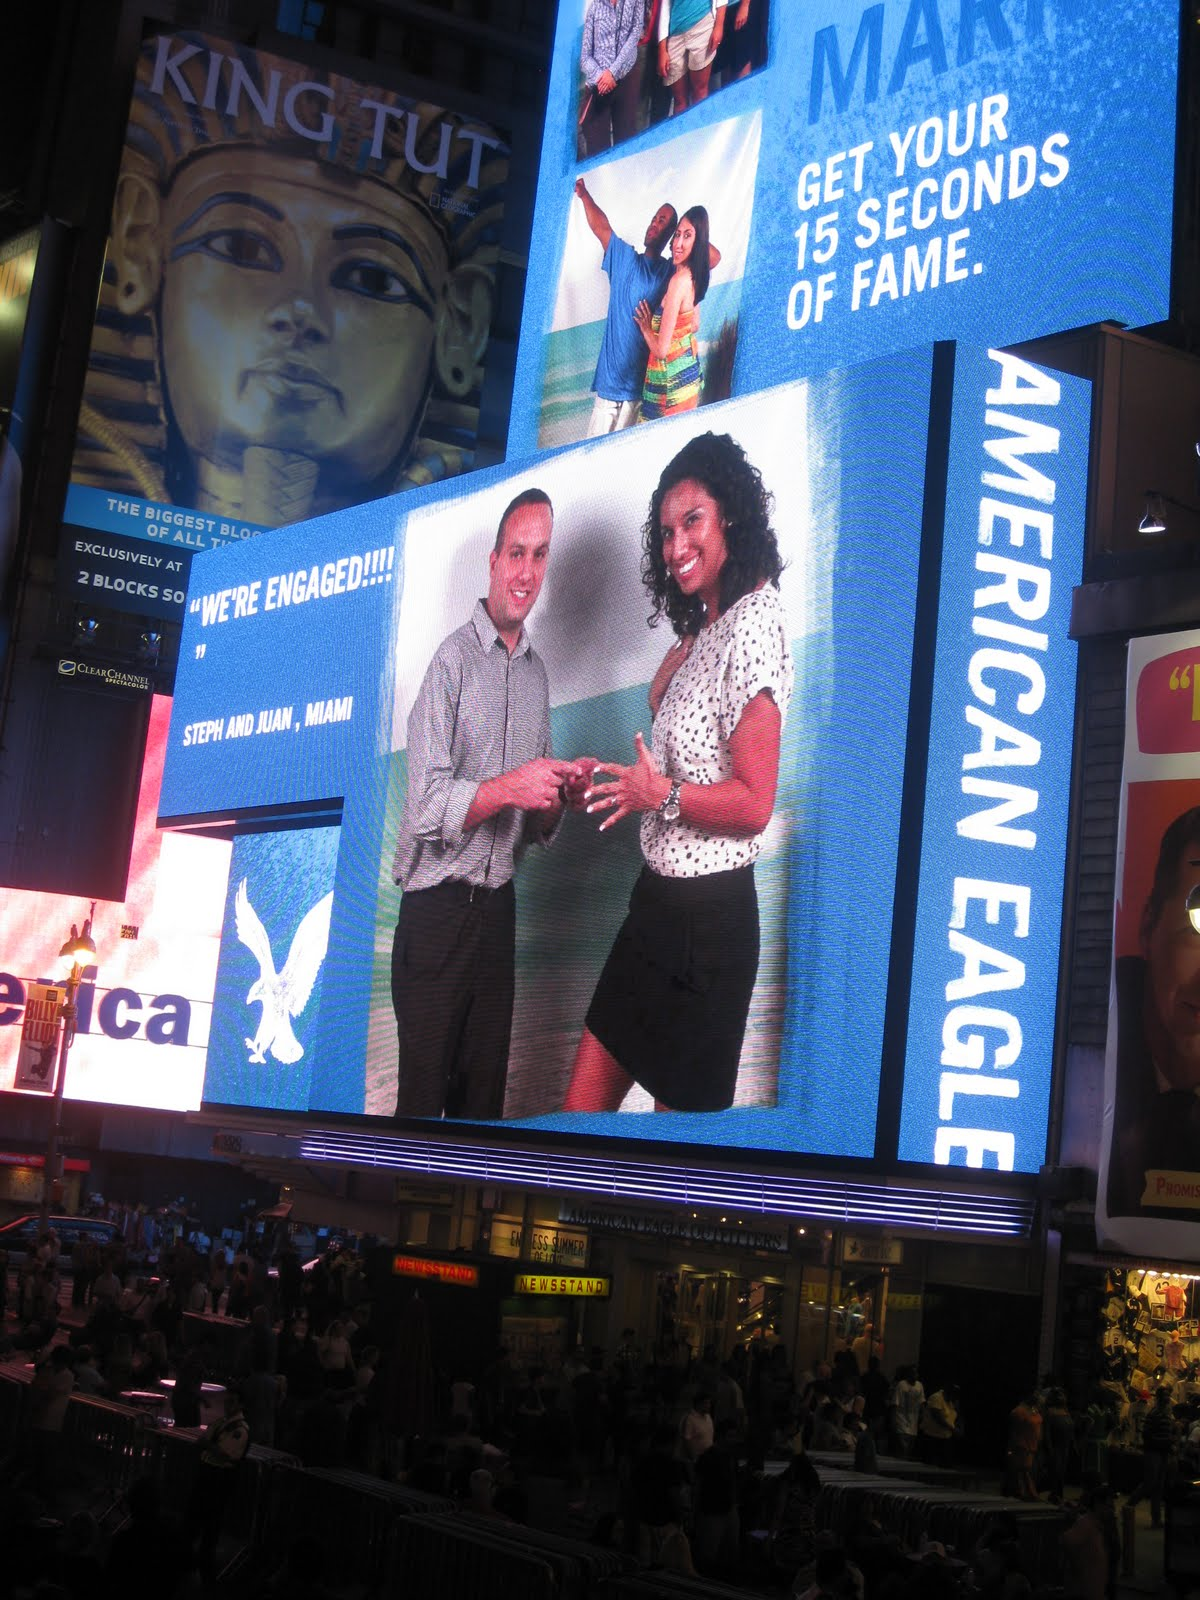 15 Seconds Fame Times Square we Had Our 15 Seconds of Fame